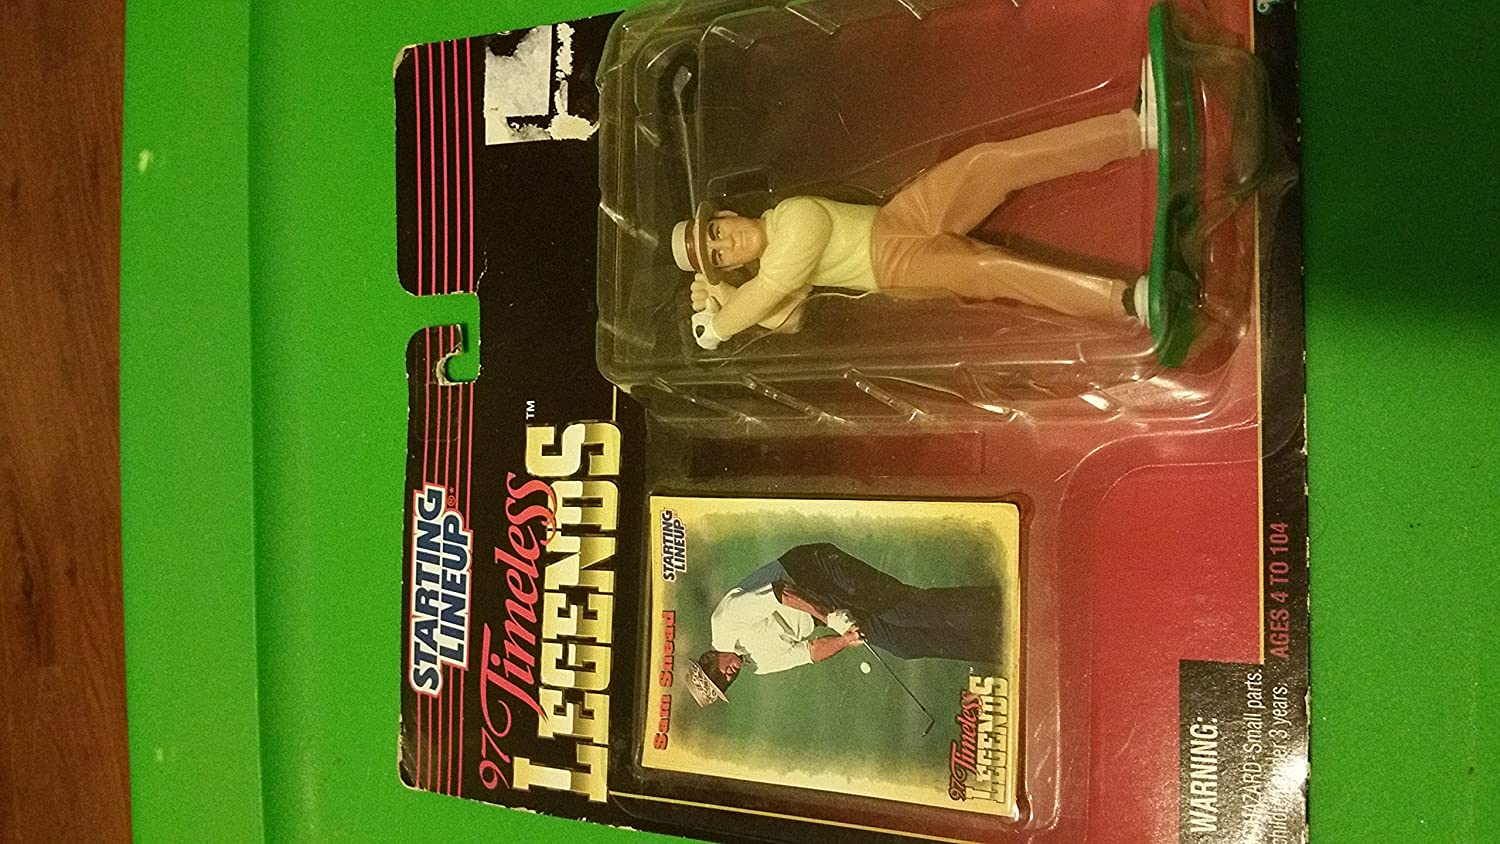 SAM SNEAD / PGA 1997 TIMELESS LEGENDS Kenner Starting Lineup & Exclusive Collector Trading Card by Kenner